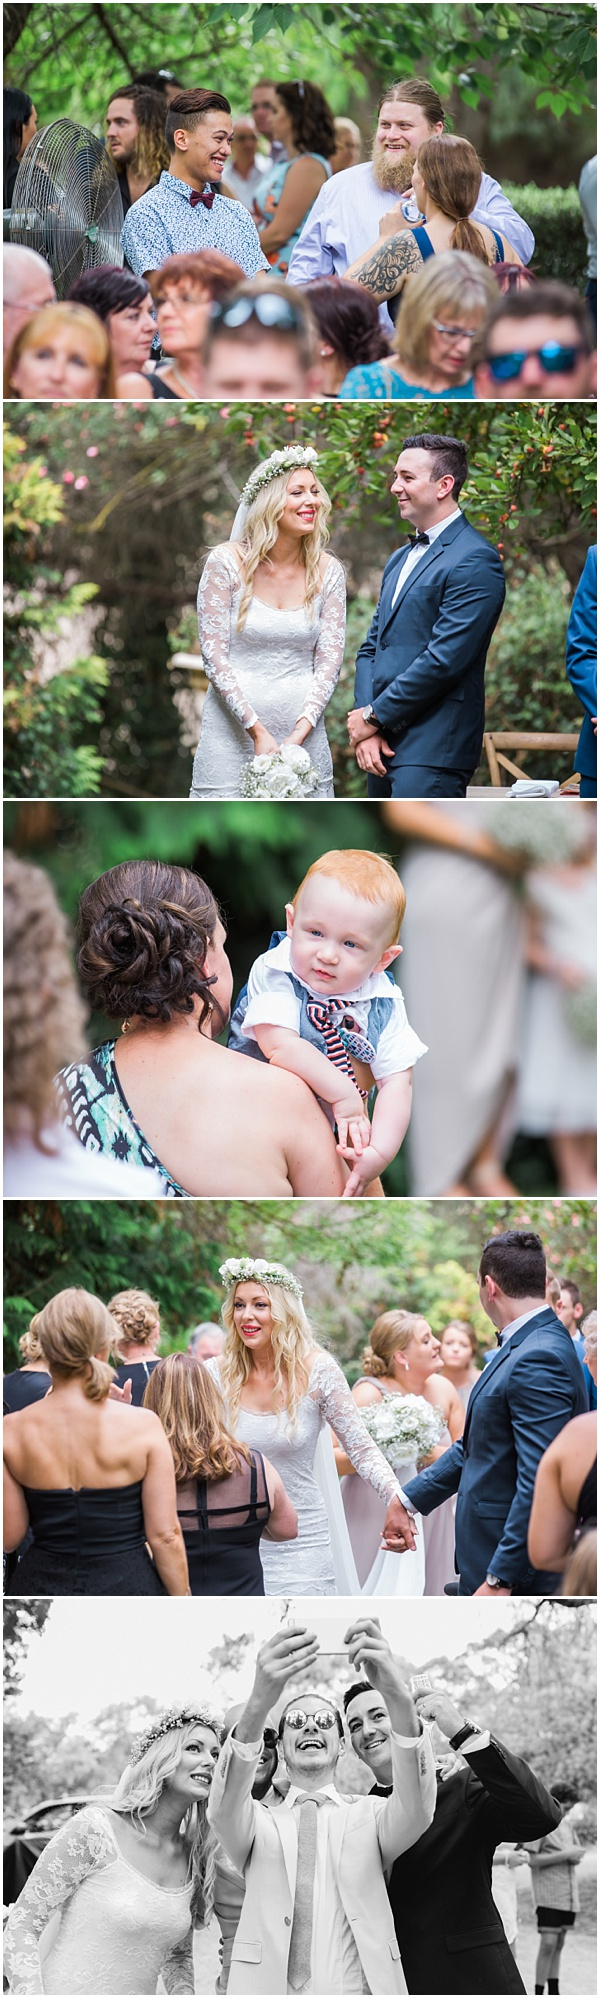 Bendigo Echuca Macedon Elegant Country Wedding Photography_0013